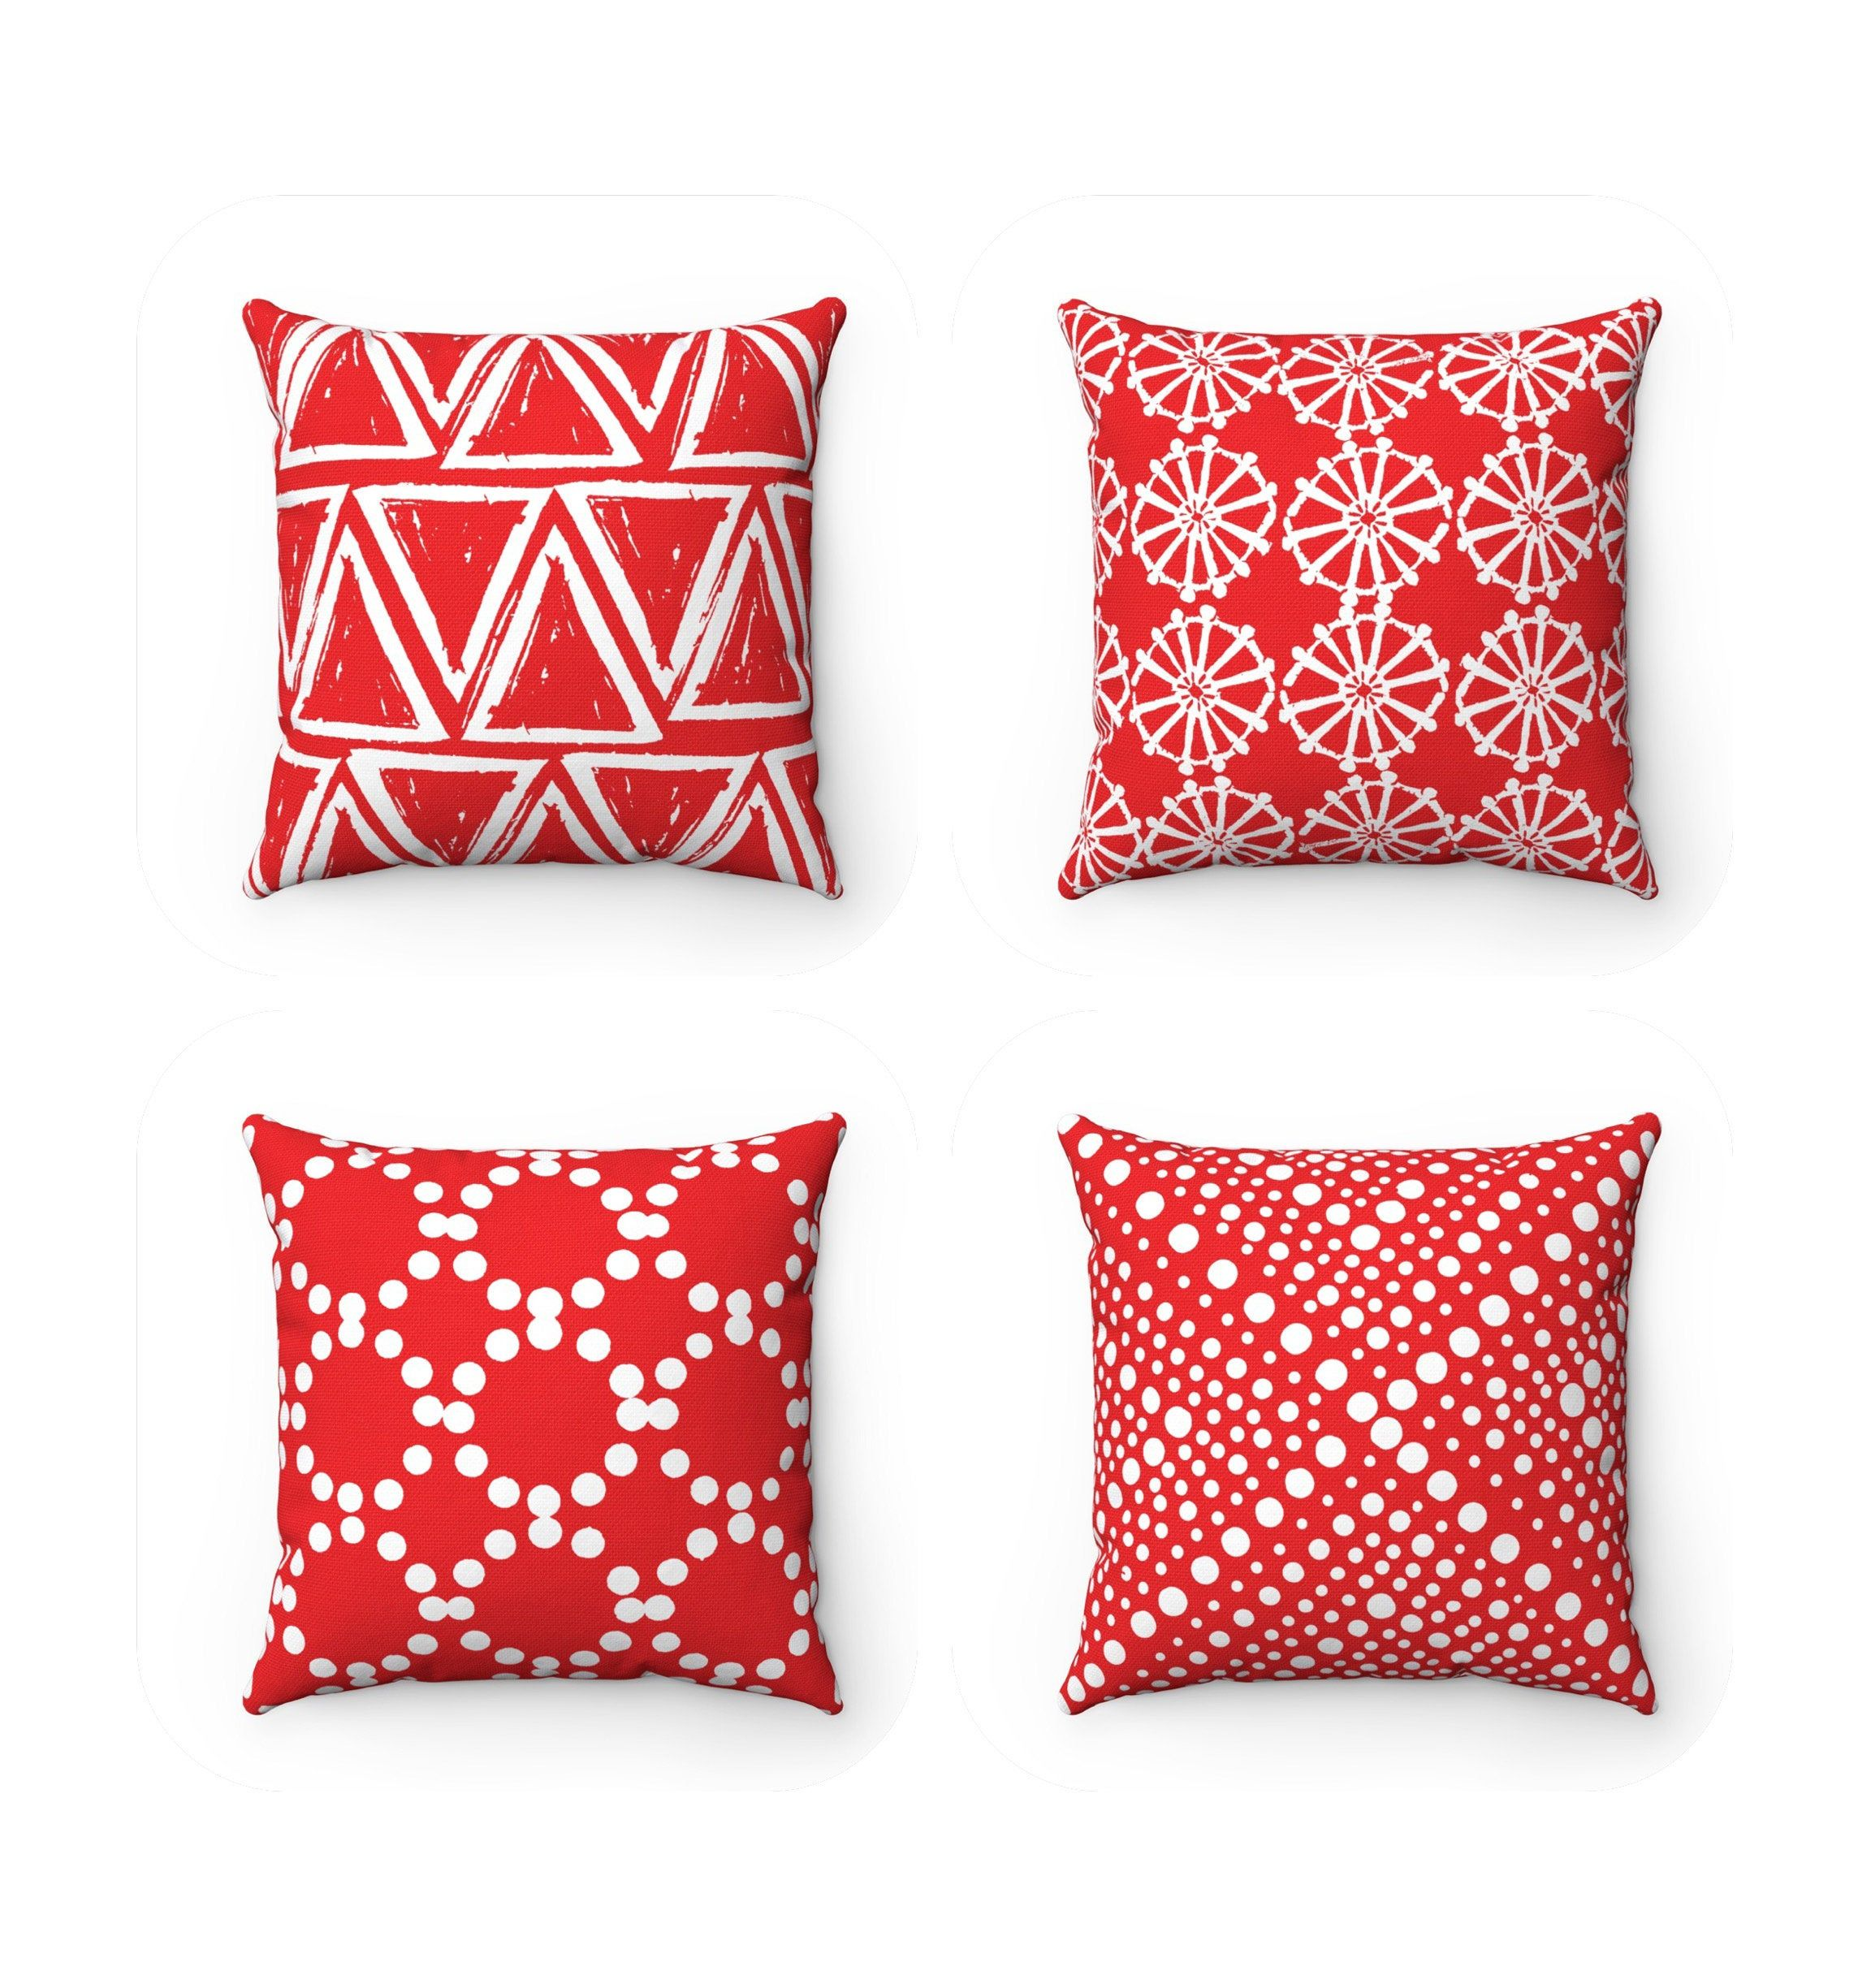 Outdoor Throw Pillow Red Outdoor Pillow Red Patio Cushion Geometric Red Throw Pillows Orange Outdoor Pillows Outdoor Pillows